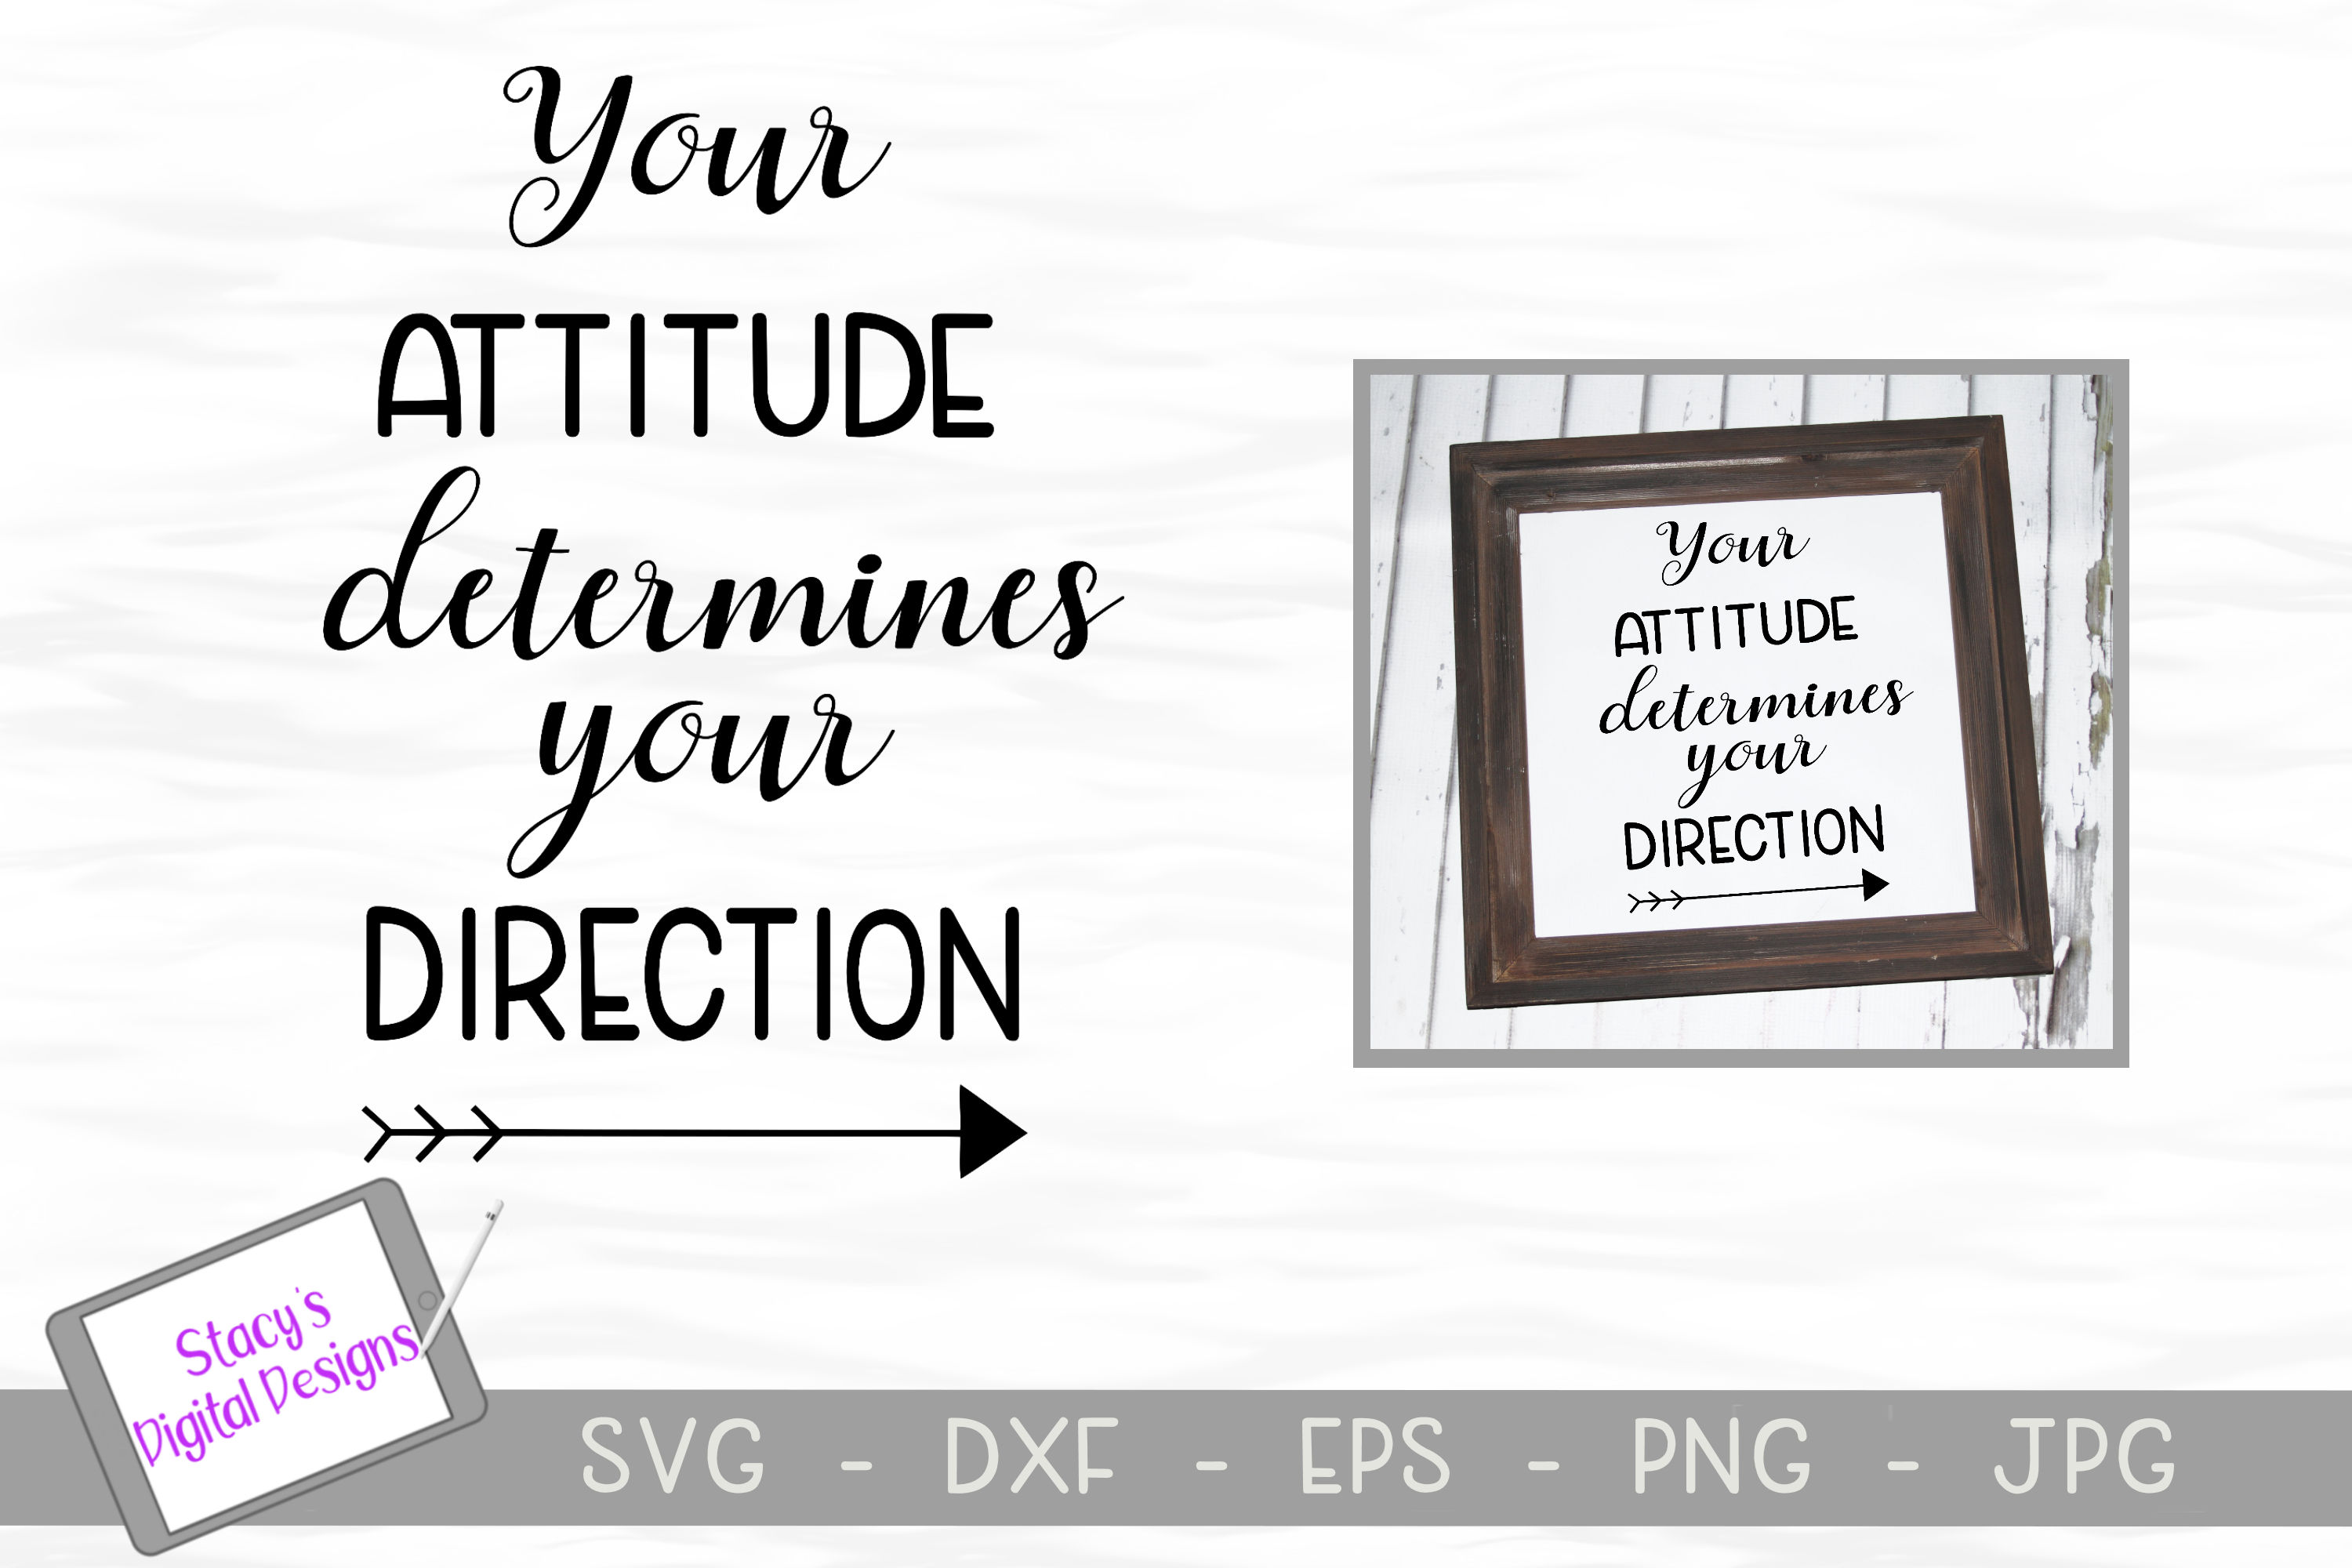 Inspirational SVG - Your attitude determines your direction example image 1